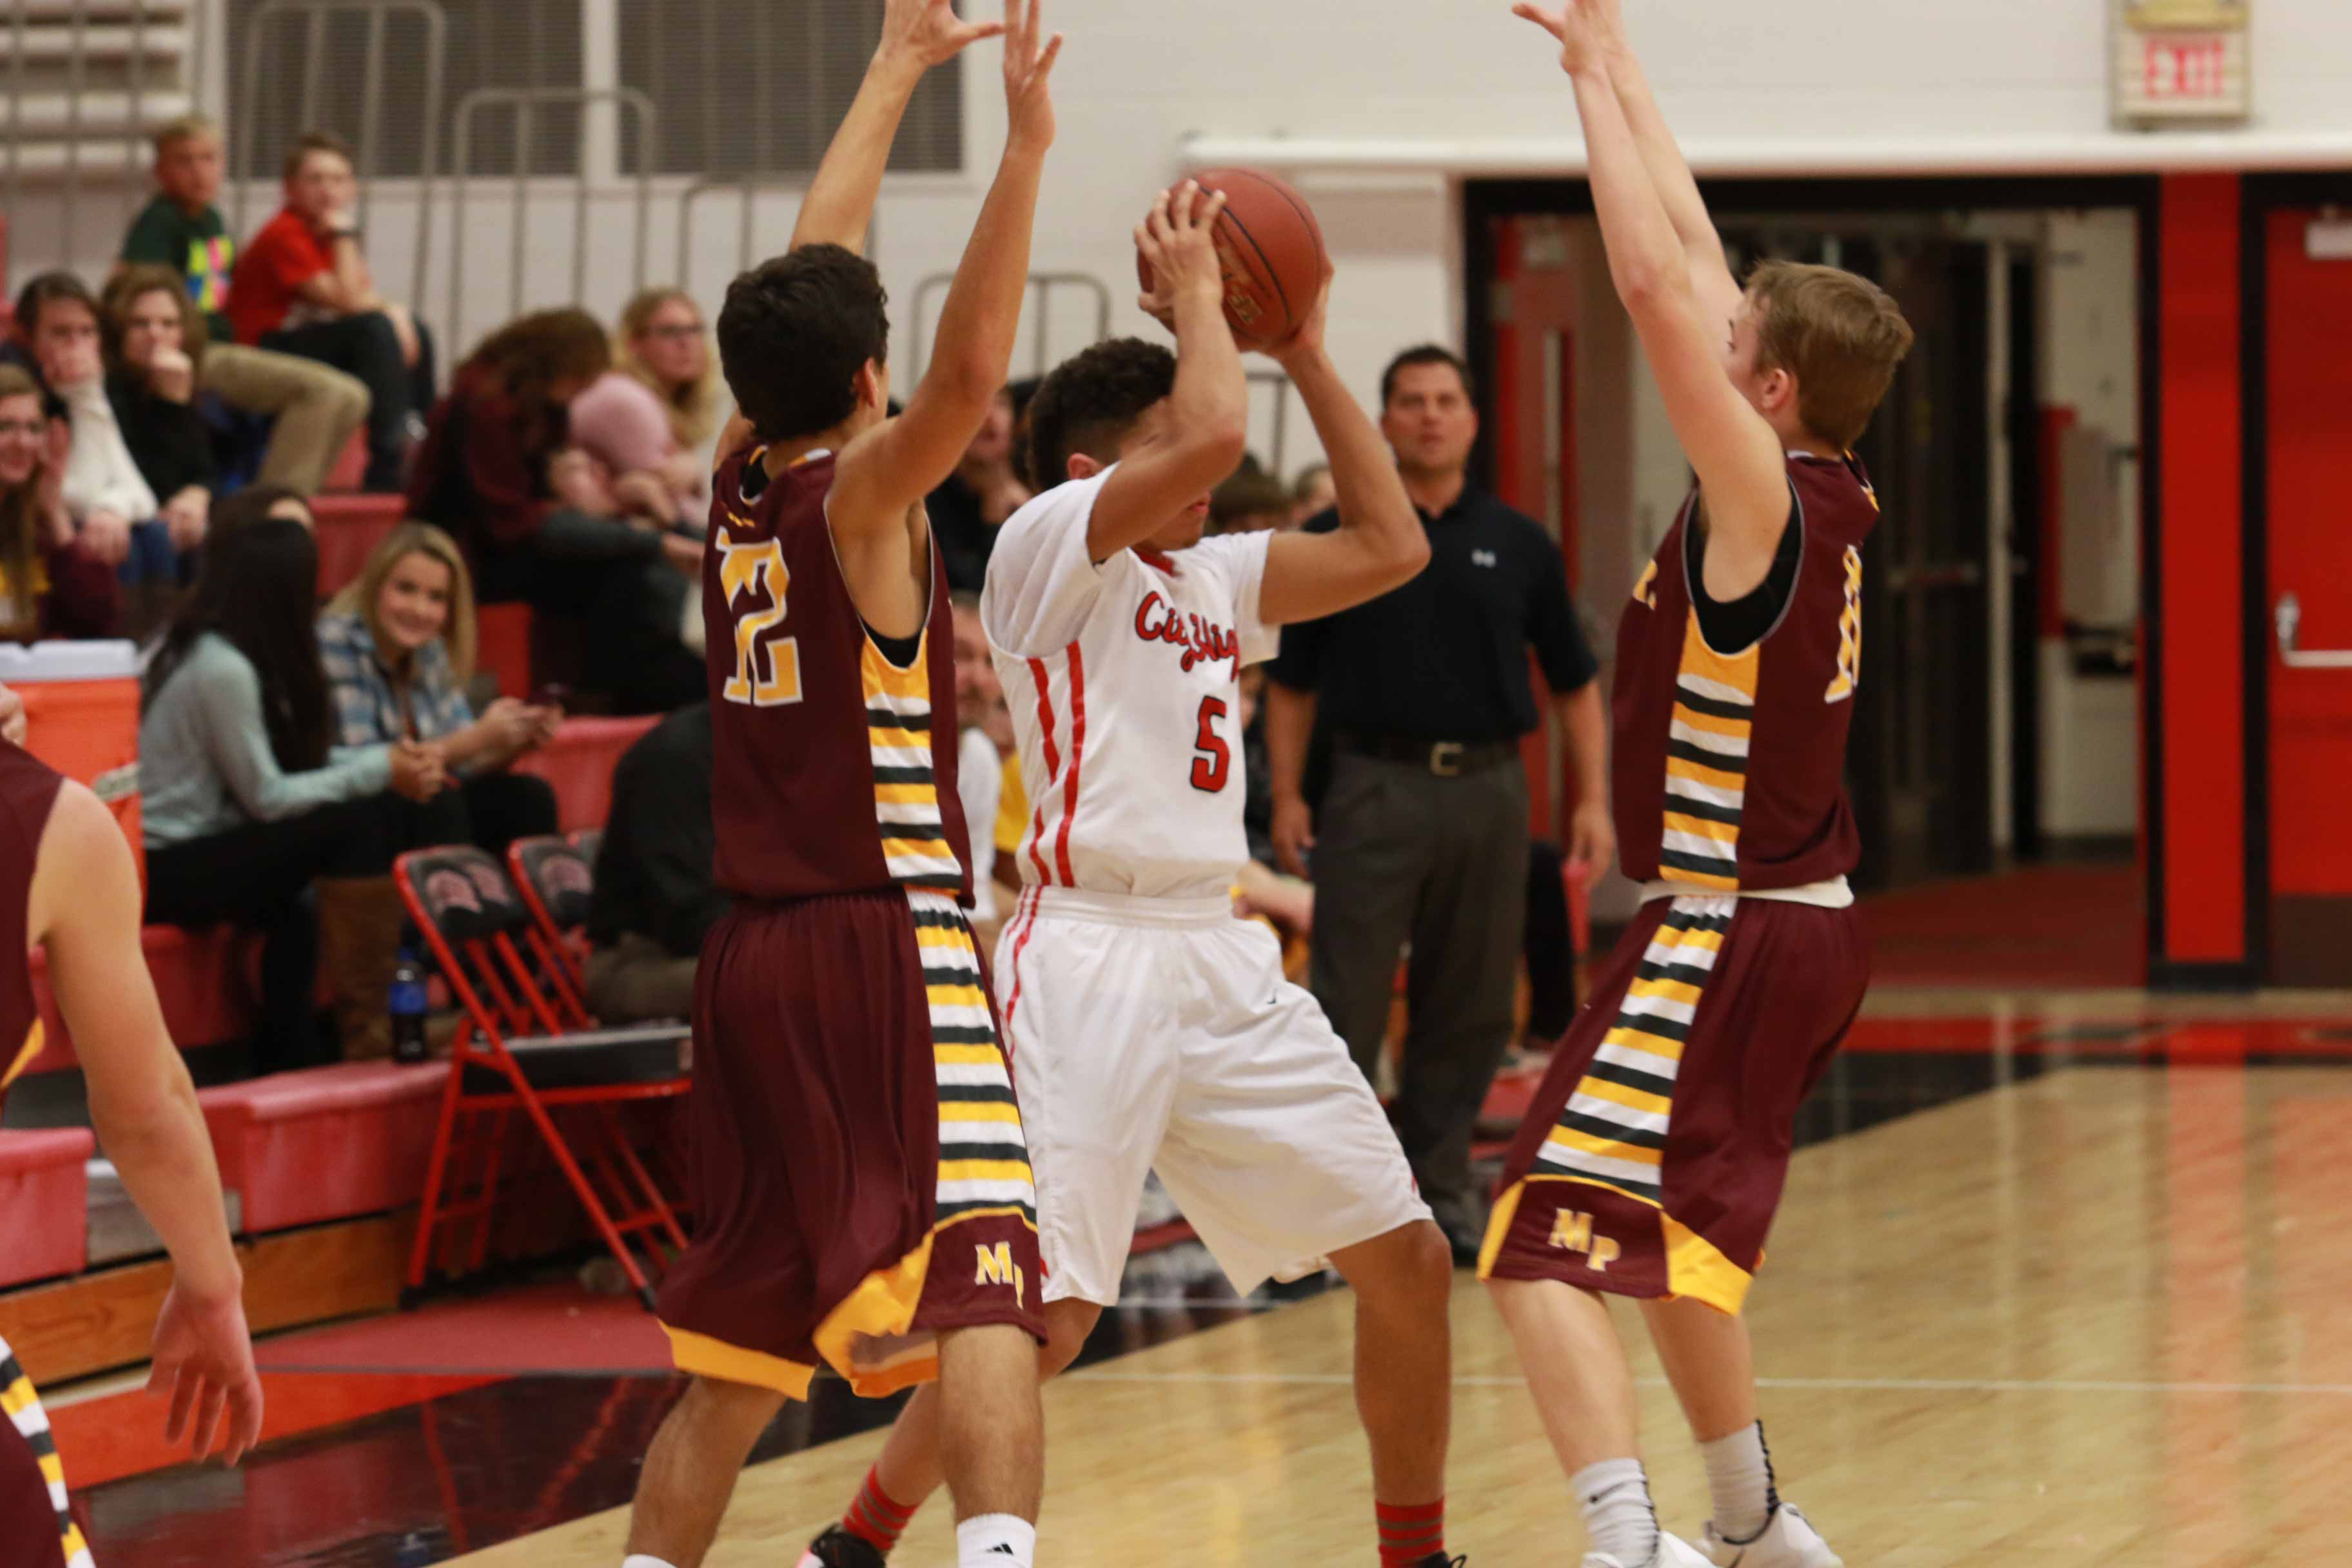 Naeem+Smith+%2717+searches+for+an+open+teammate+while+being+guarded+by+Mount+Pleasant%27s+Jordan+Magnani+%2718+%2820%29+and+Brady+Sartorius+%2718.